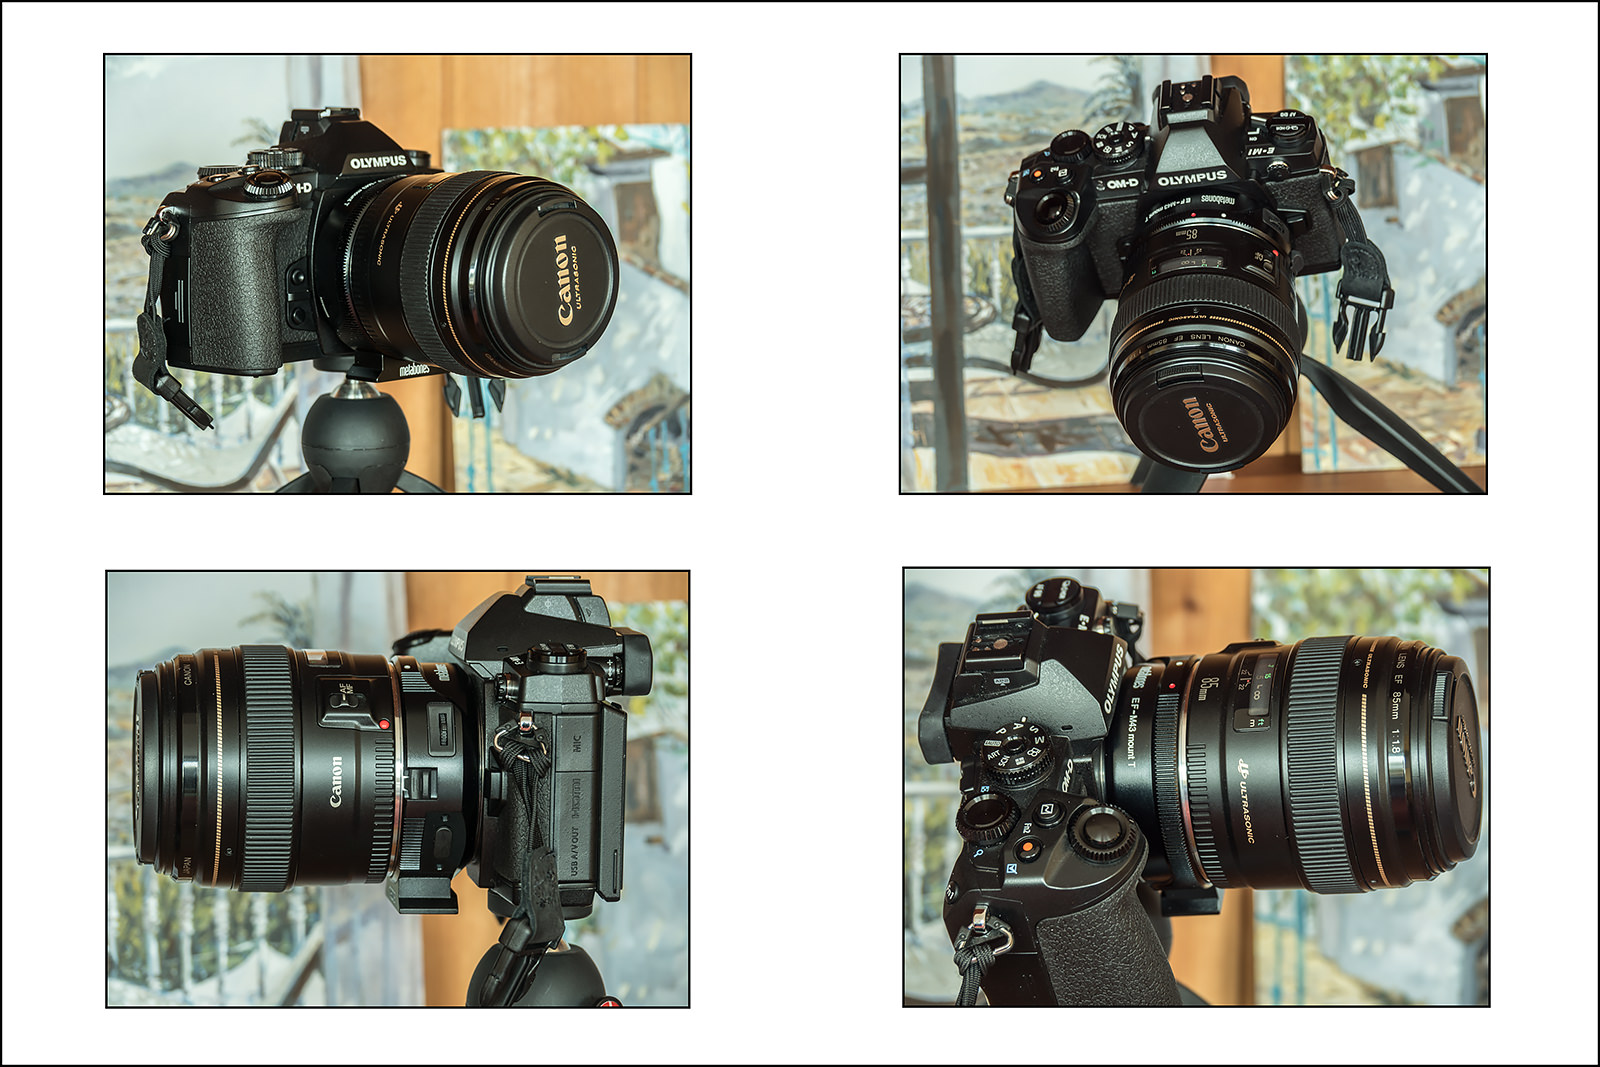 Olympus E-M1 with the Metabones adapter and Canon 85 f1.8